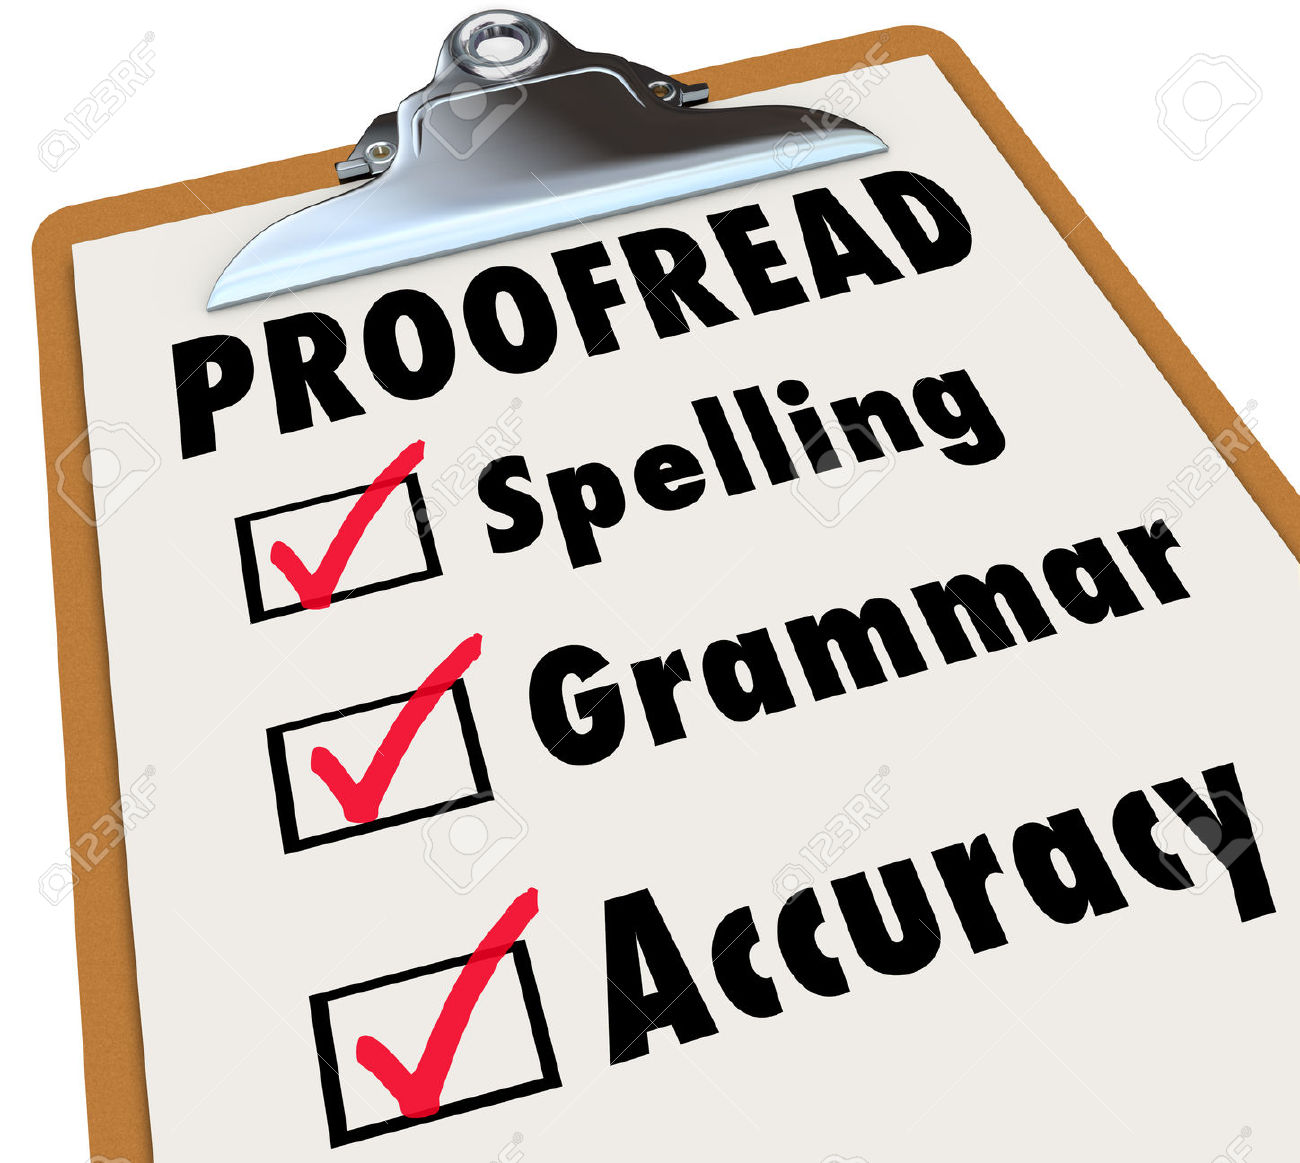 004 Essay Proofreader Spanish Proof Checklist And Checked Boxes Next The Words Spelling Grammar Accuracy Things Stock Photo Proofreading Exercise Online Correction Free Editing Sensational Jobs Uk Full